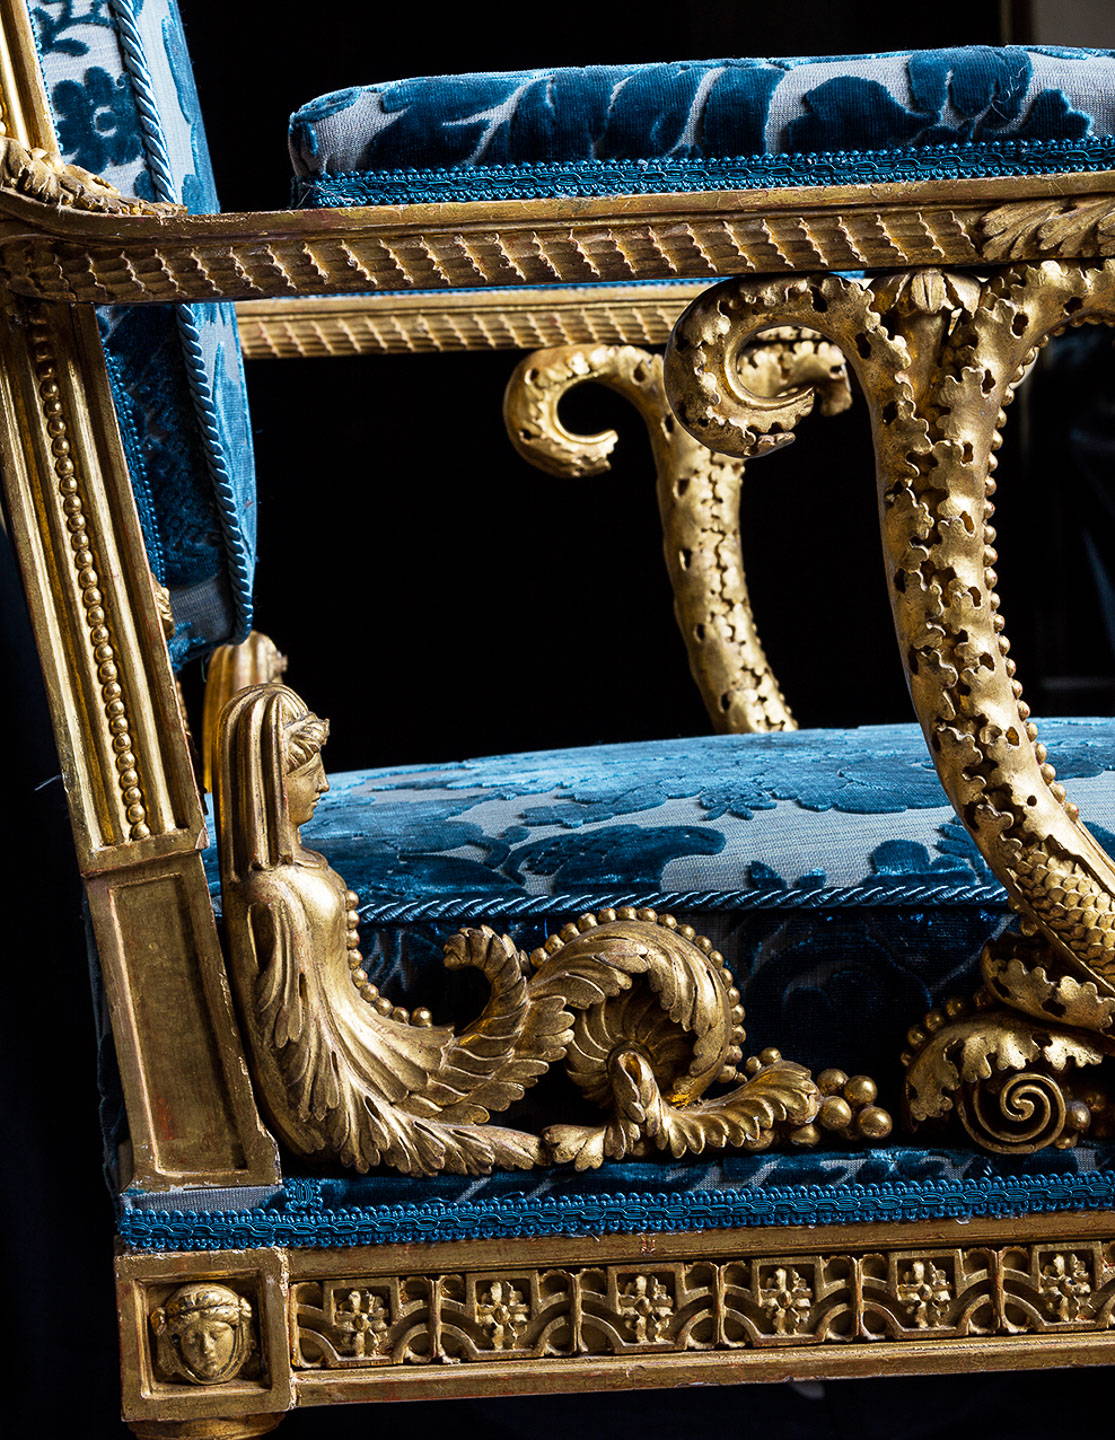 Villa Balbiano luxury private estate on lake Como unique art collection 18th century blue chair from Habsburg royal family collection detail 27.left000VB int